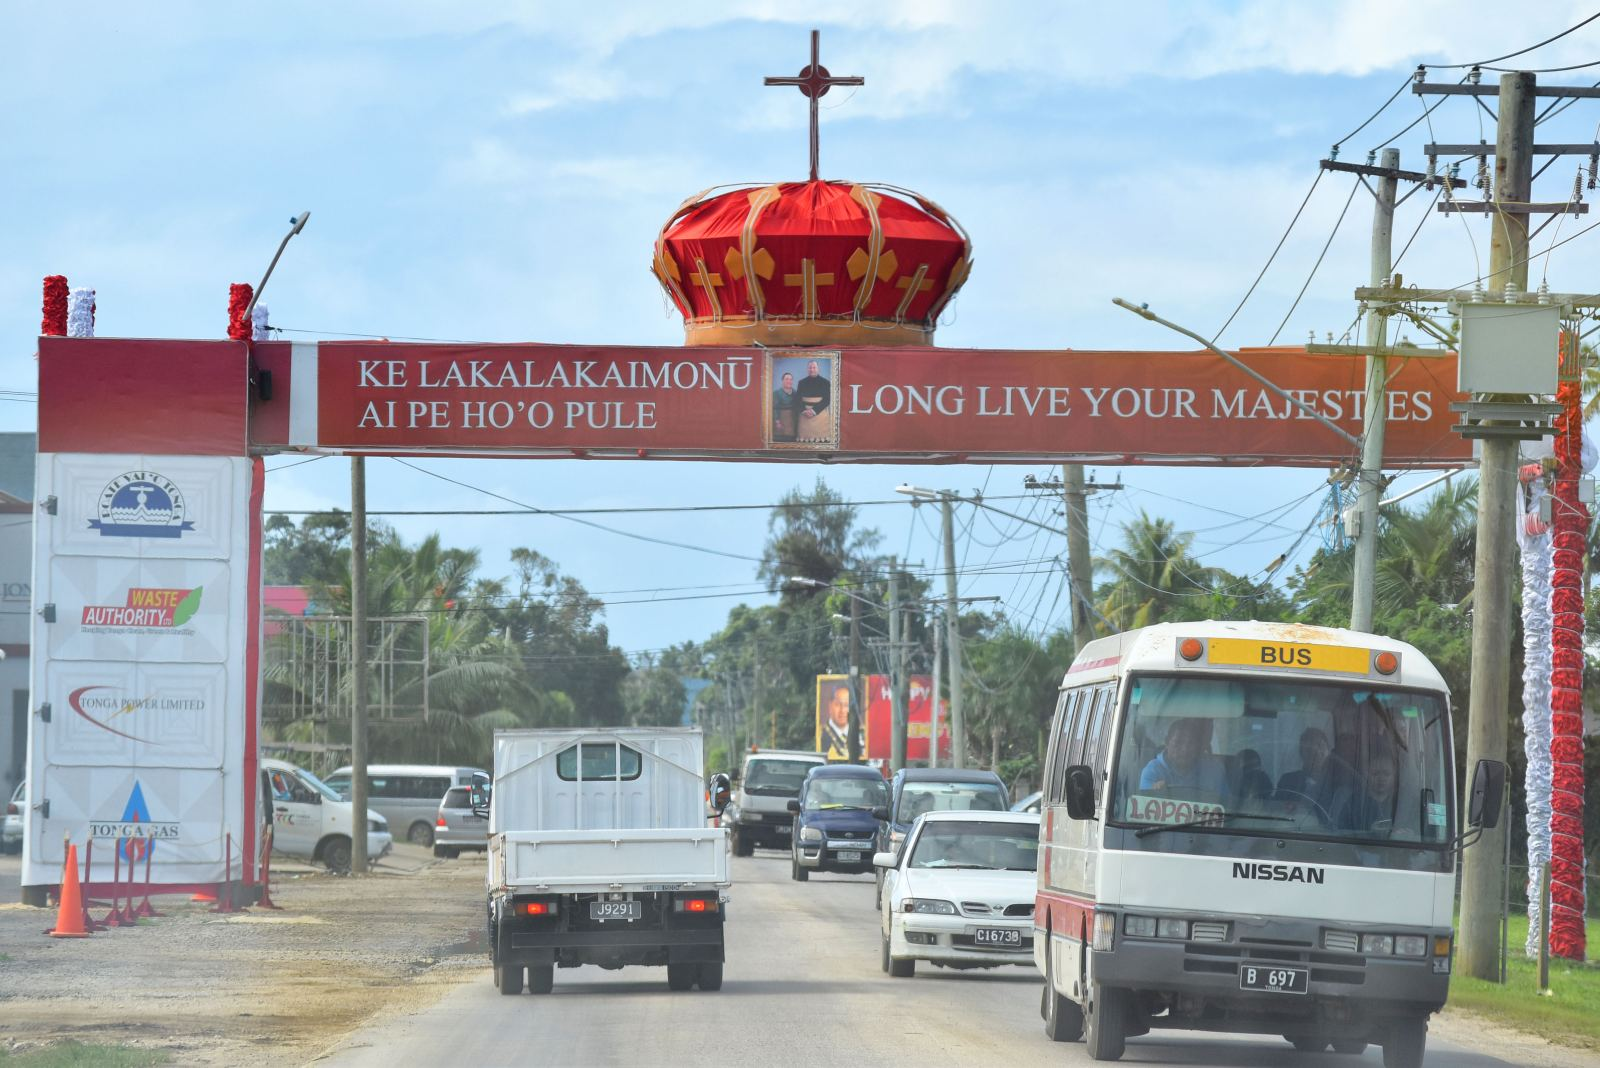 How Much Does it Cost to Travel Tonga by Bus?